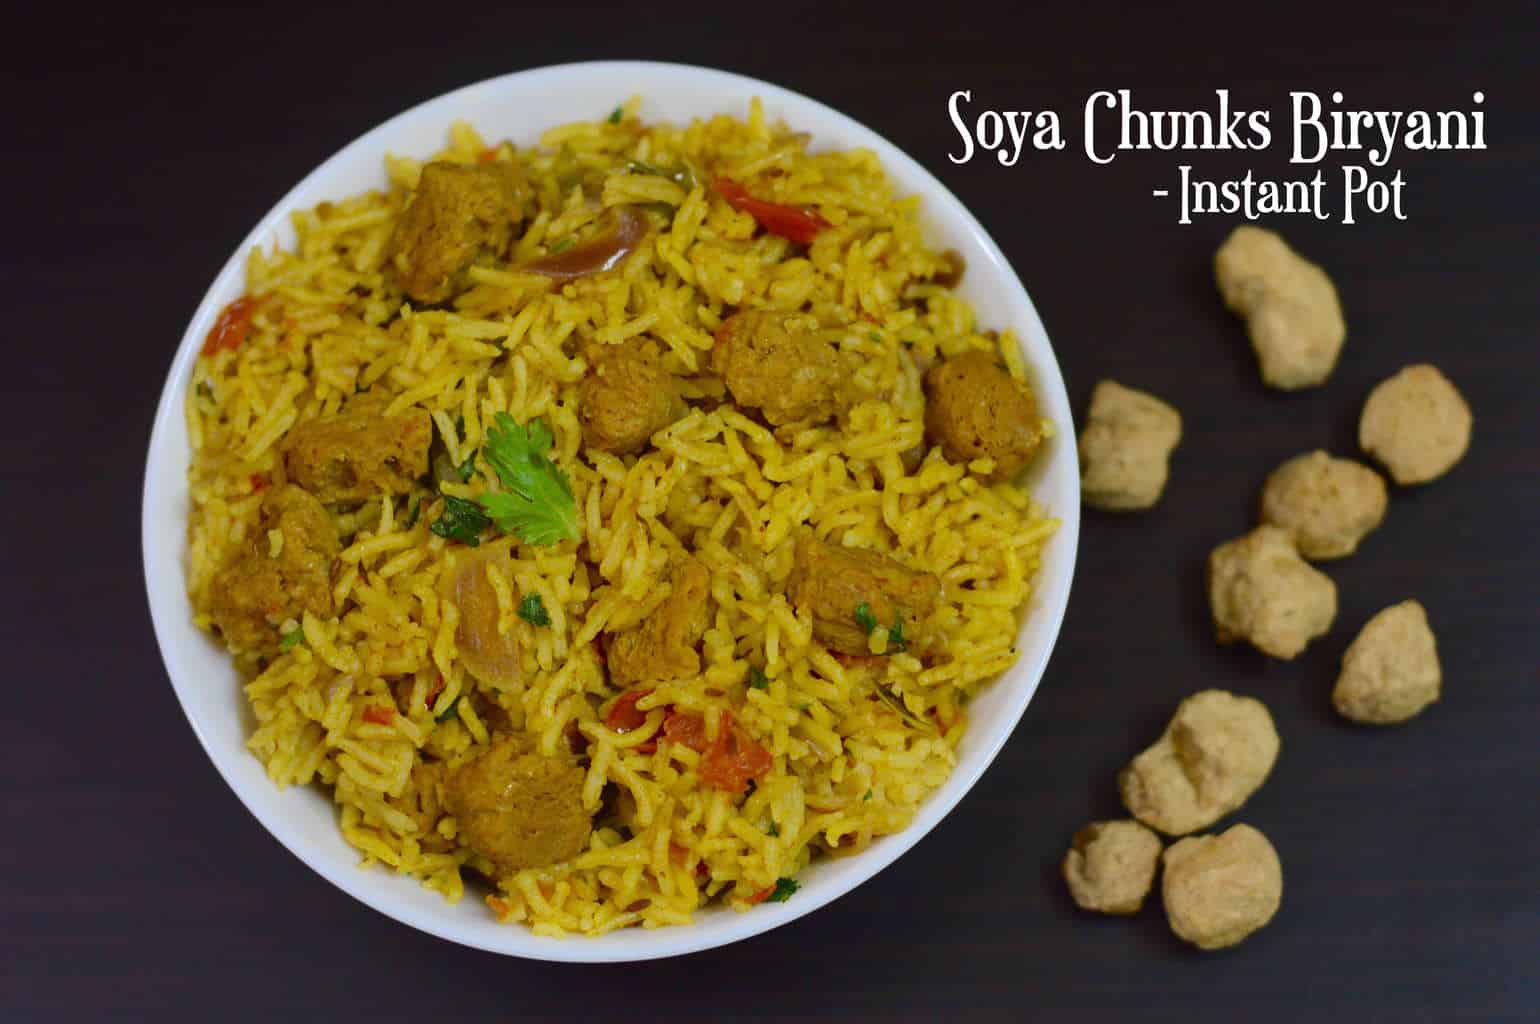 Instant Pot Soya Chunks Biryani is a perfect one pot dish which is healthy, flavorful and high in protein and can be prepared under 30 minutes.Its good lunchbox option for both kids and adults.